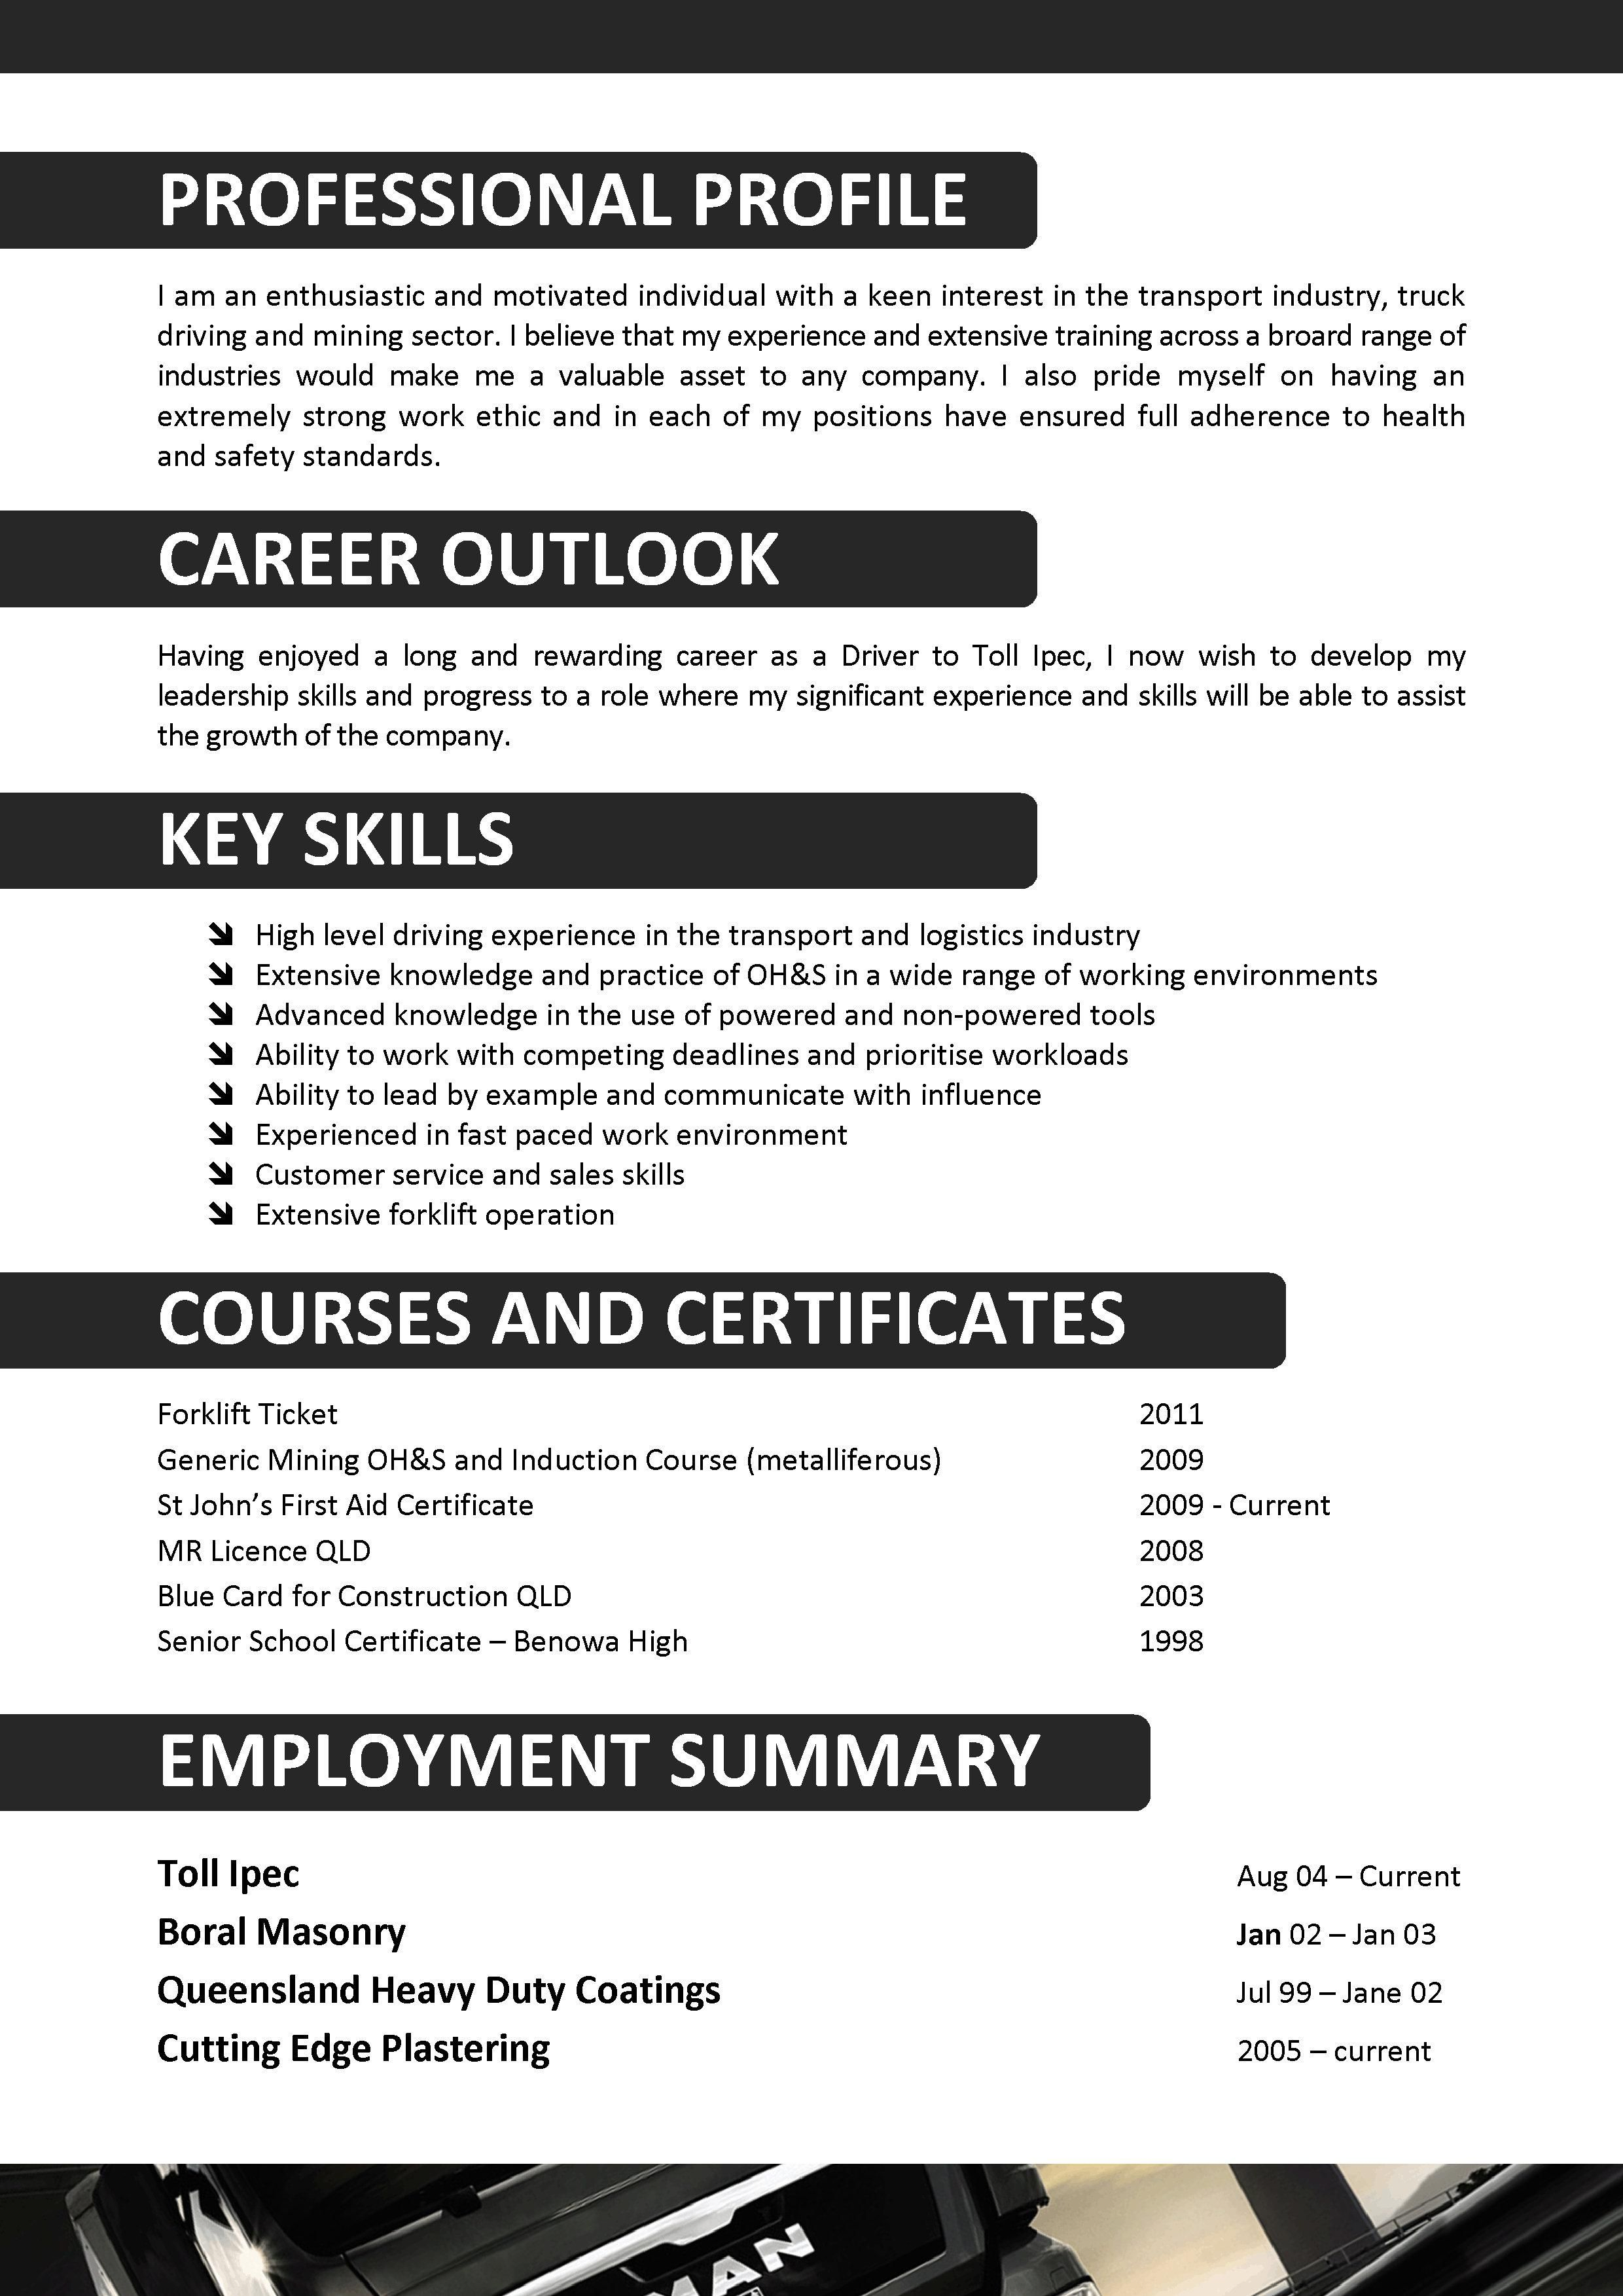 We Can Help With Professional Resume Writing Resume Templates Selection Criteria Writing Linkedin Profiles Inter Resume Skills Resume Words Resume Examples